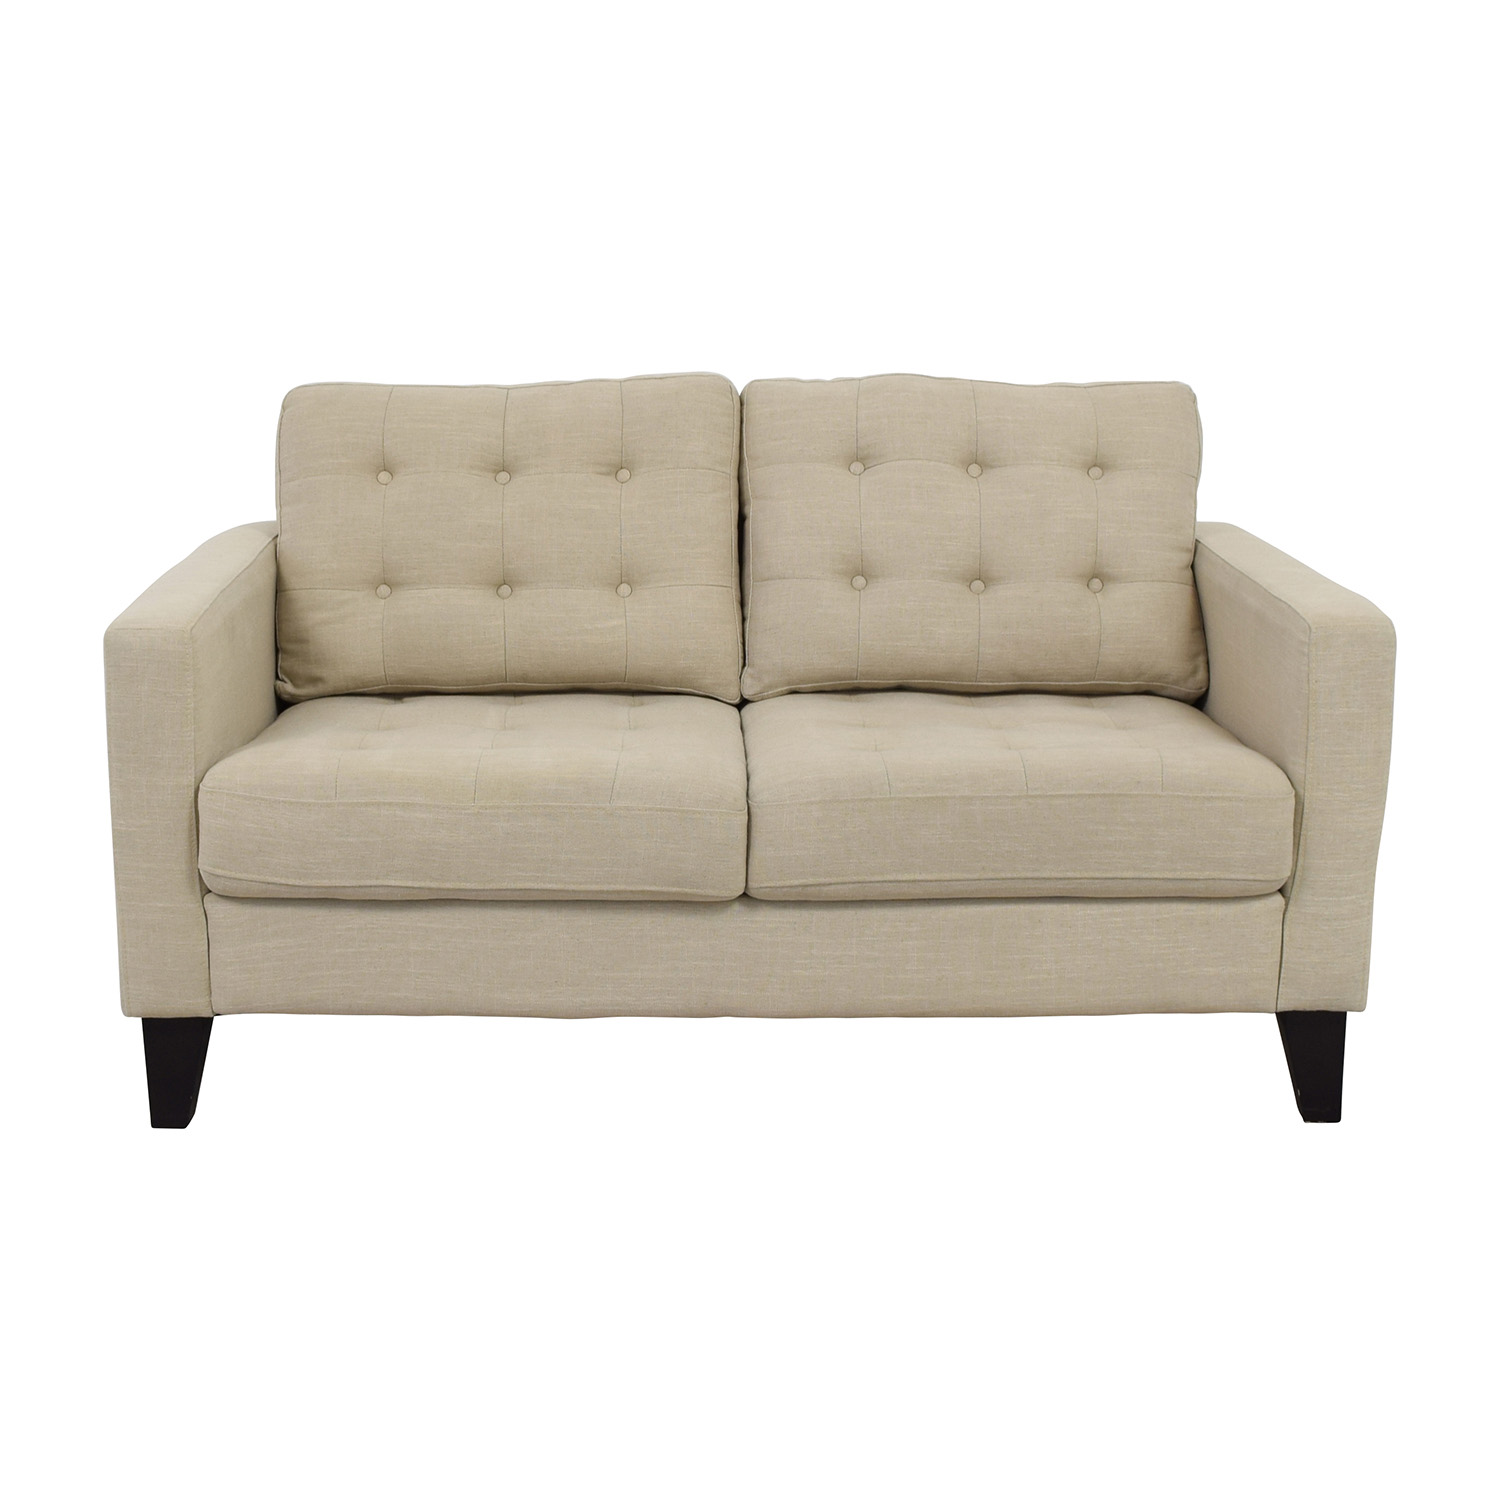 tufted sofa accent p grey loveseat sam modern levitz in chair product